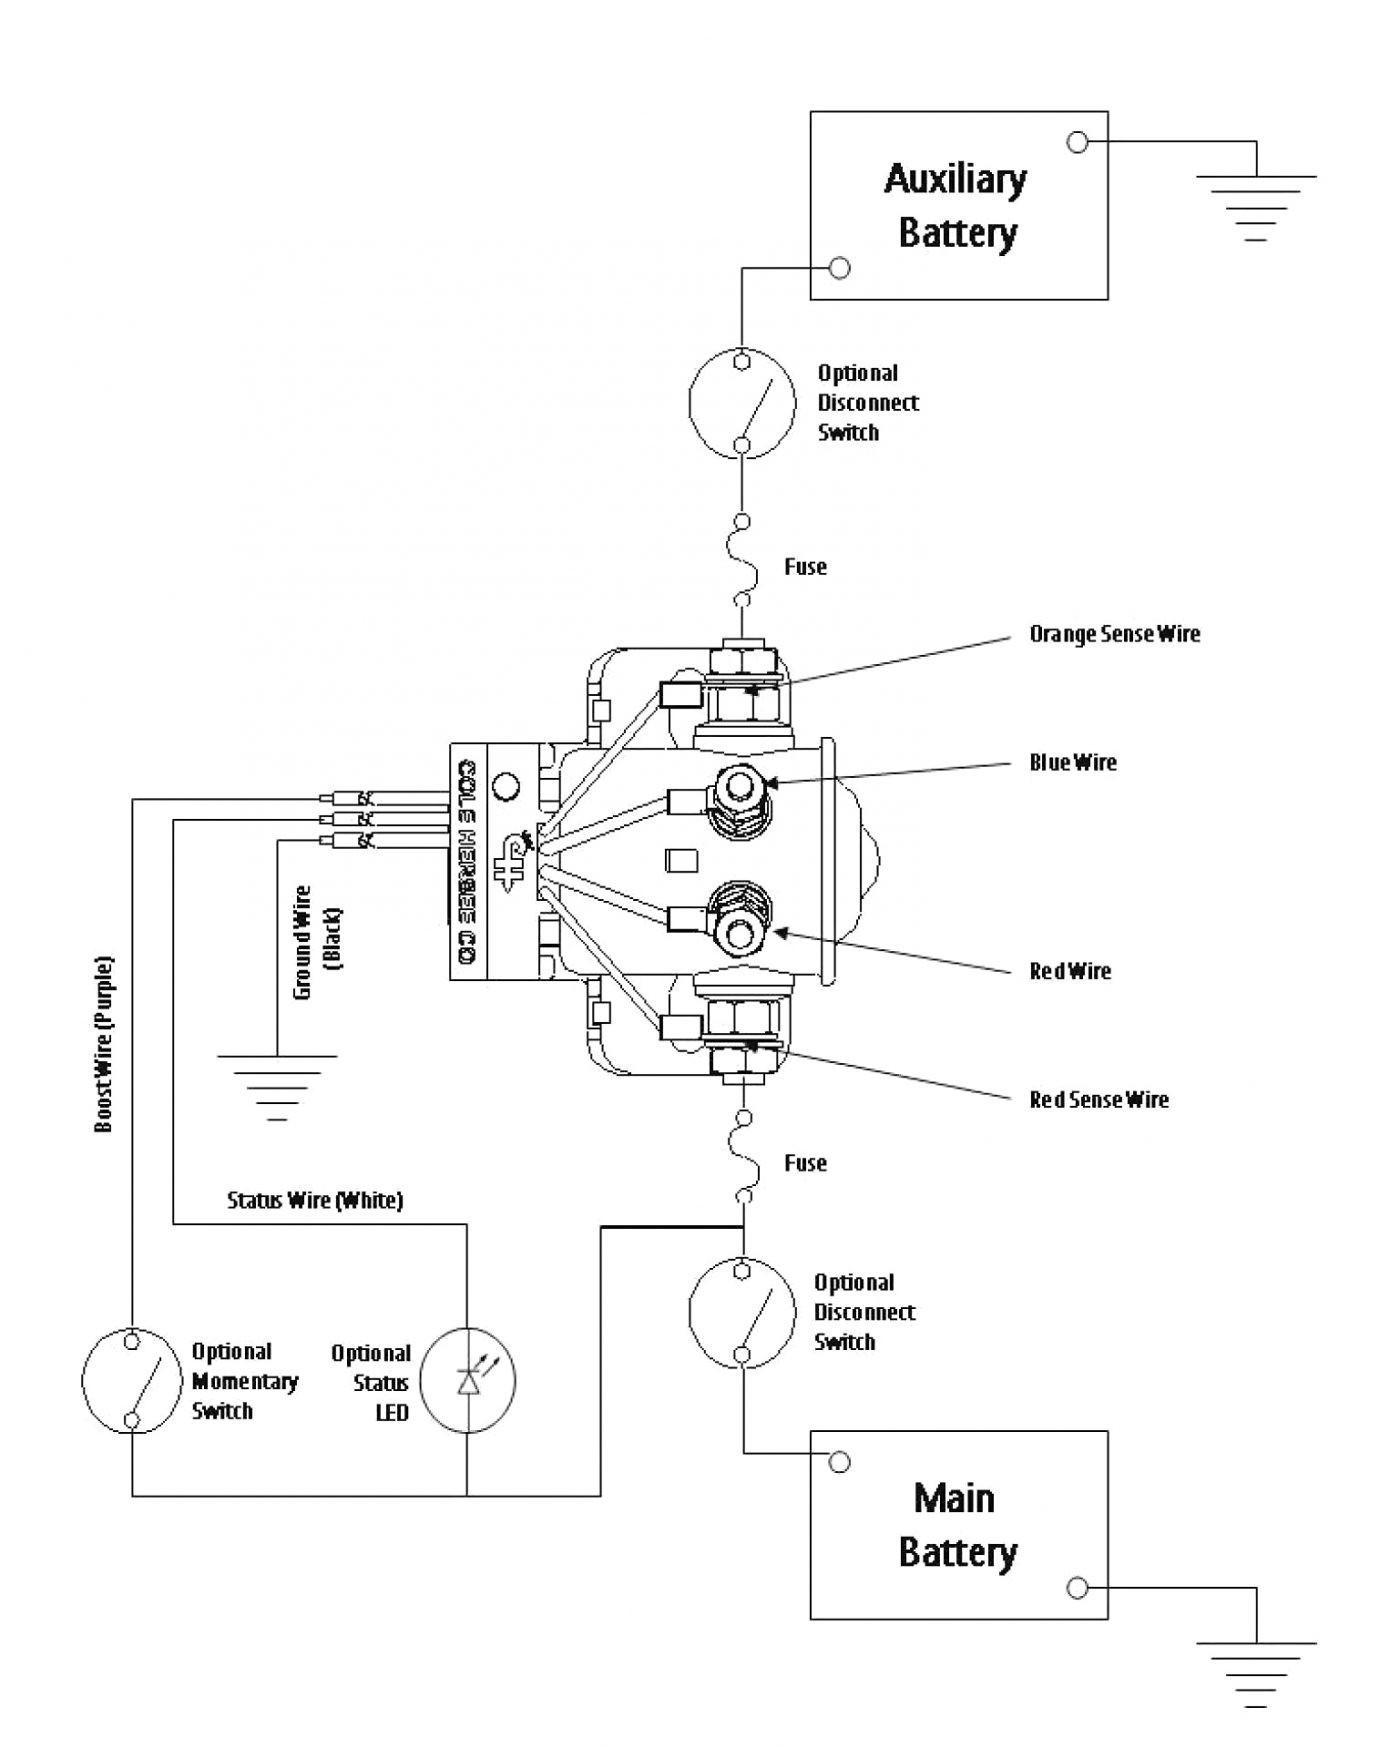 Wiring Diagram for Alternator to Battery Valid Wiring Diagram Alternator to Battery New Wiring Diagram for